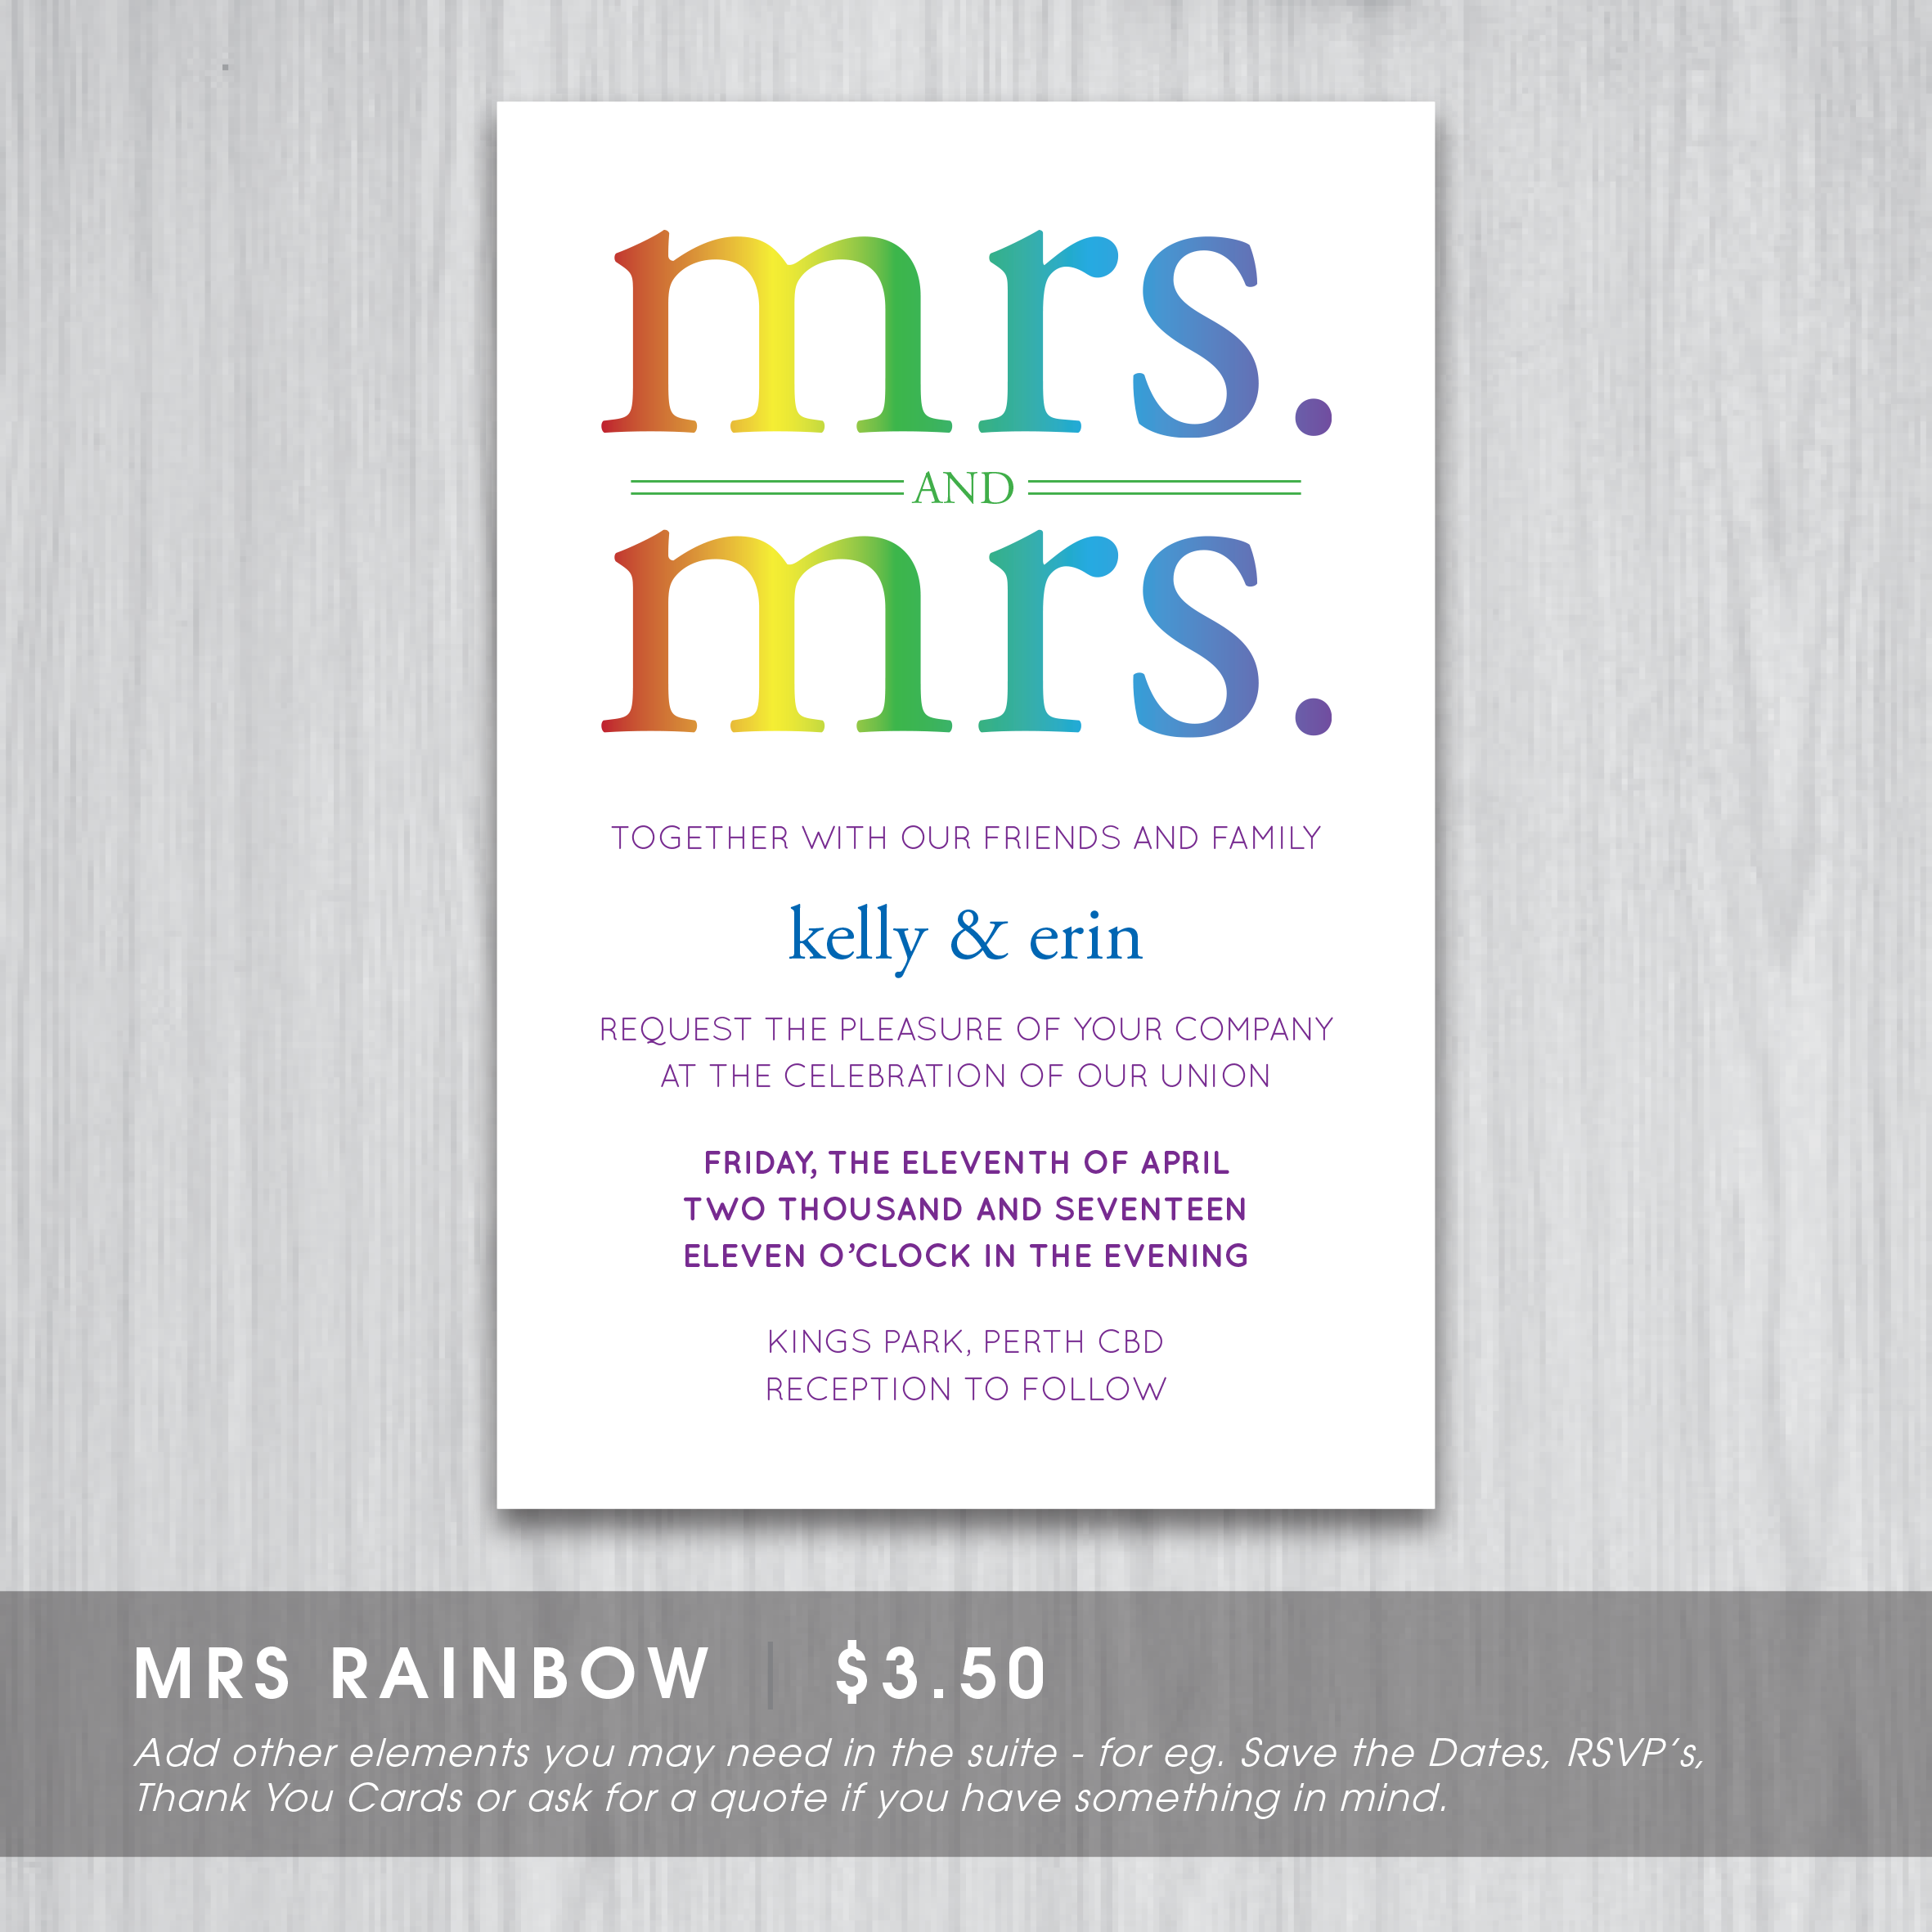 Wedding-Invites-Webpage-layout-7